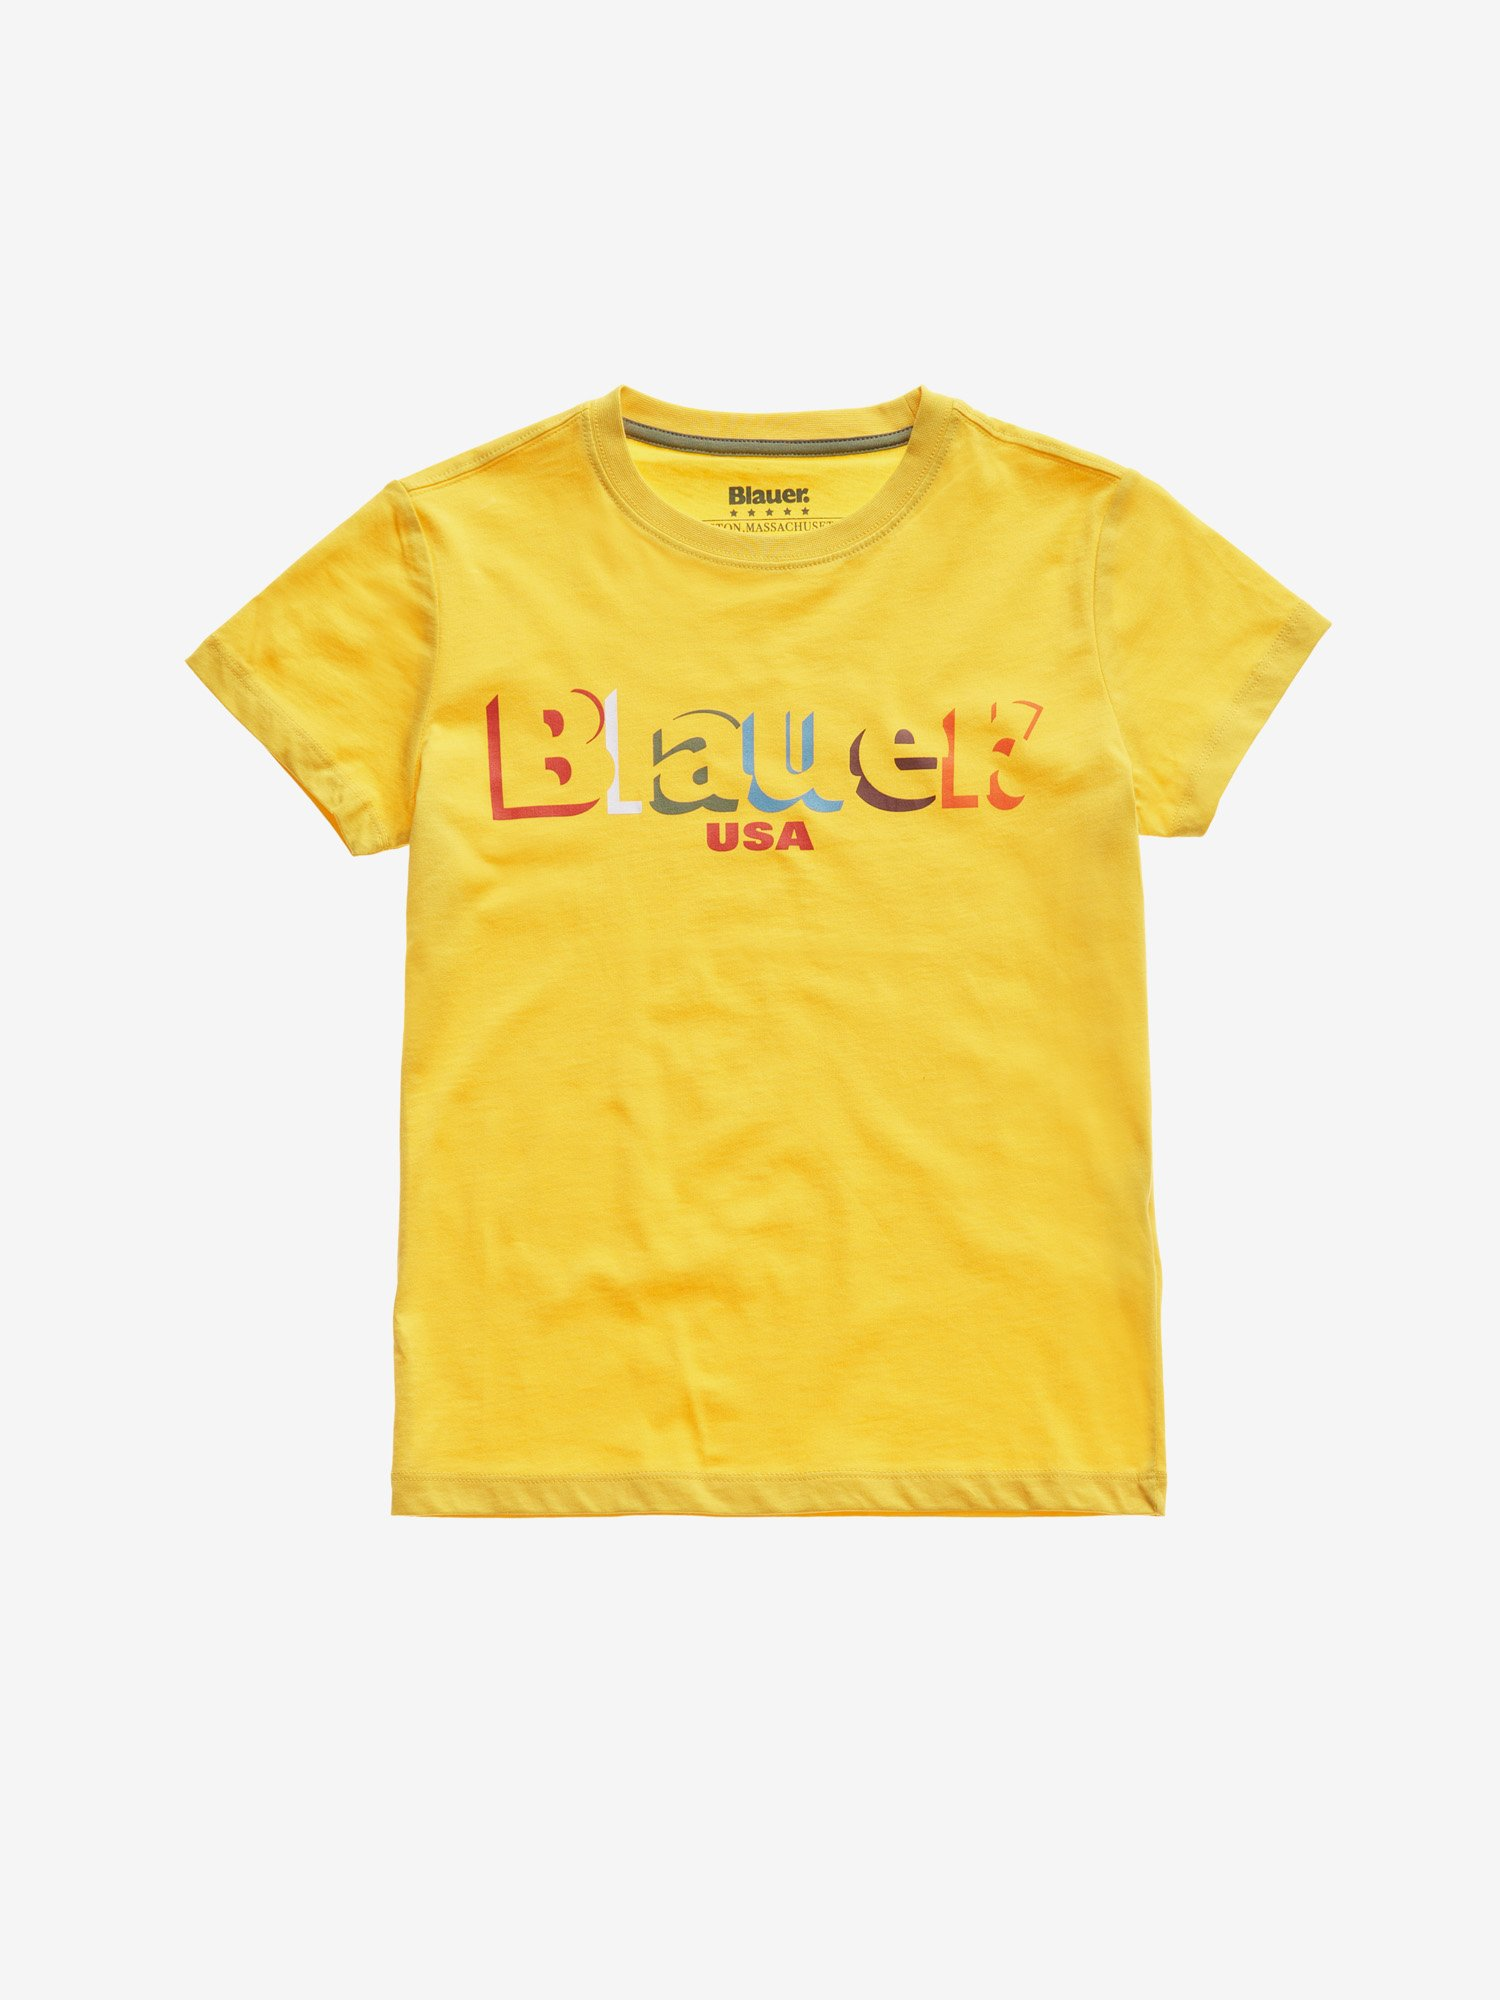 JUNIOR COLOURFUL BLAUER T-SHIRT - Blauer